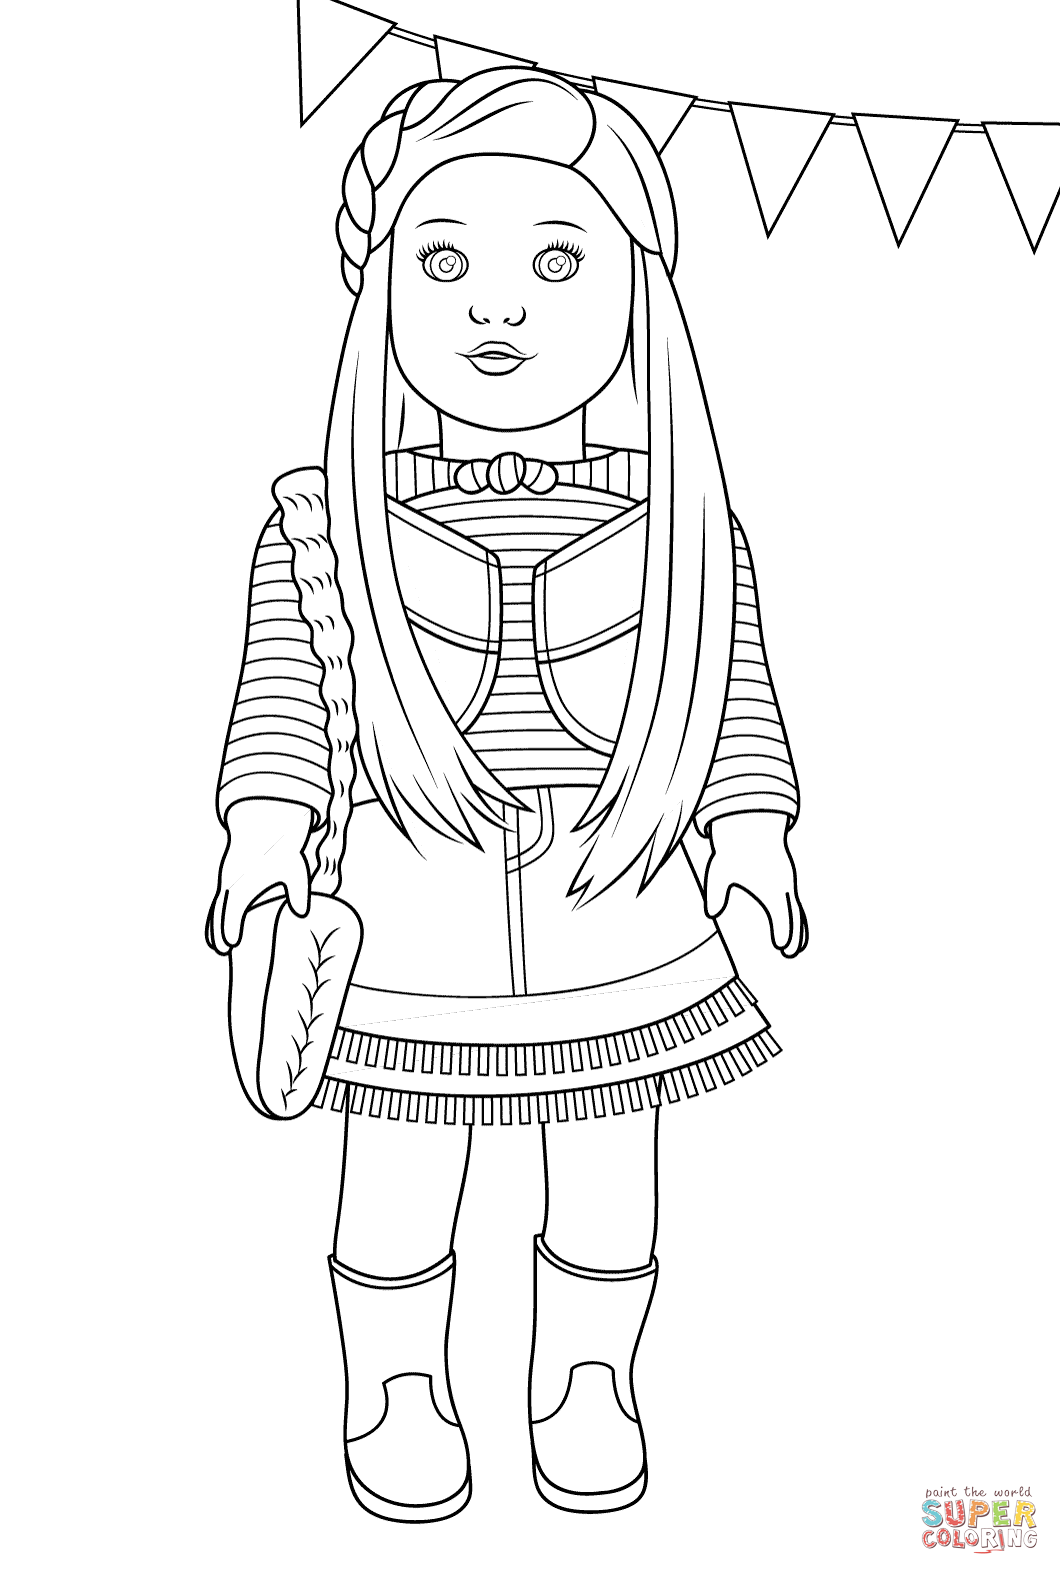 american girl coloring pages printable american girl isabelle doll coloring page free printable coloring pages girl american printable